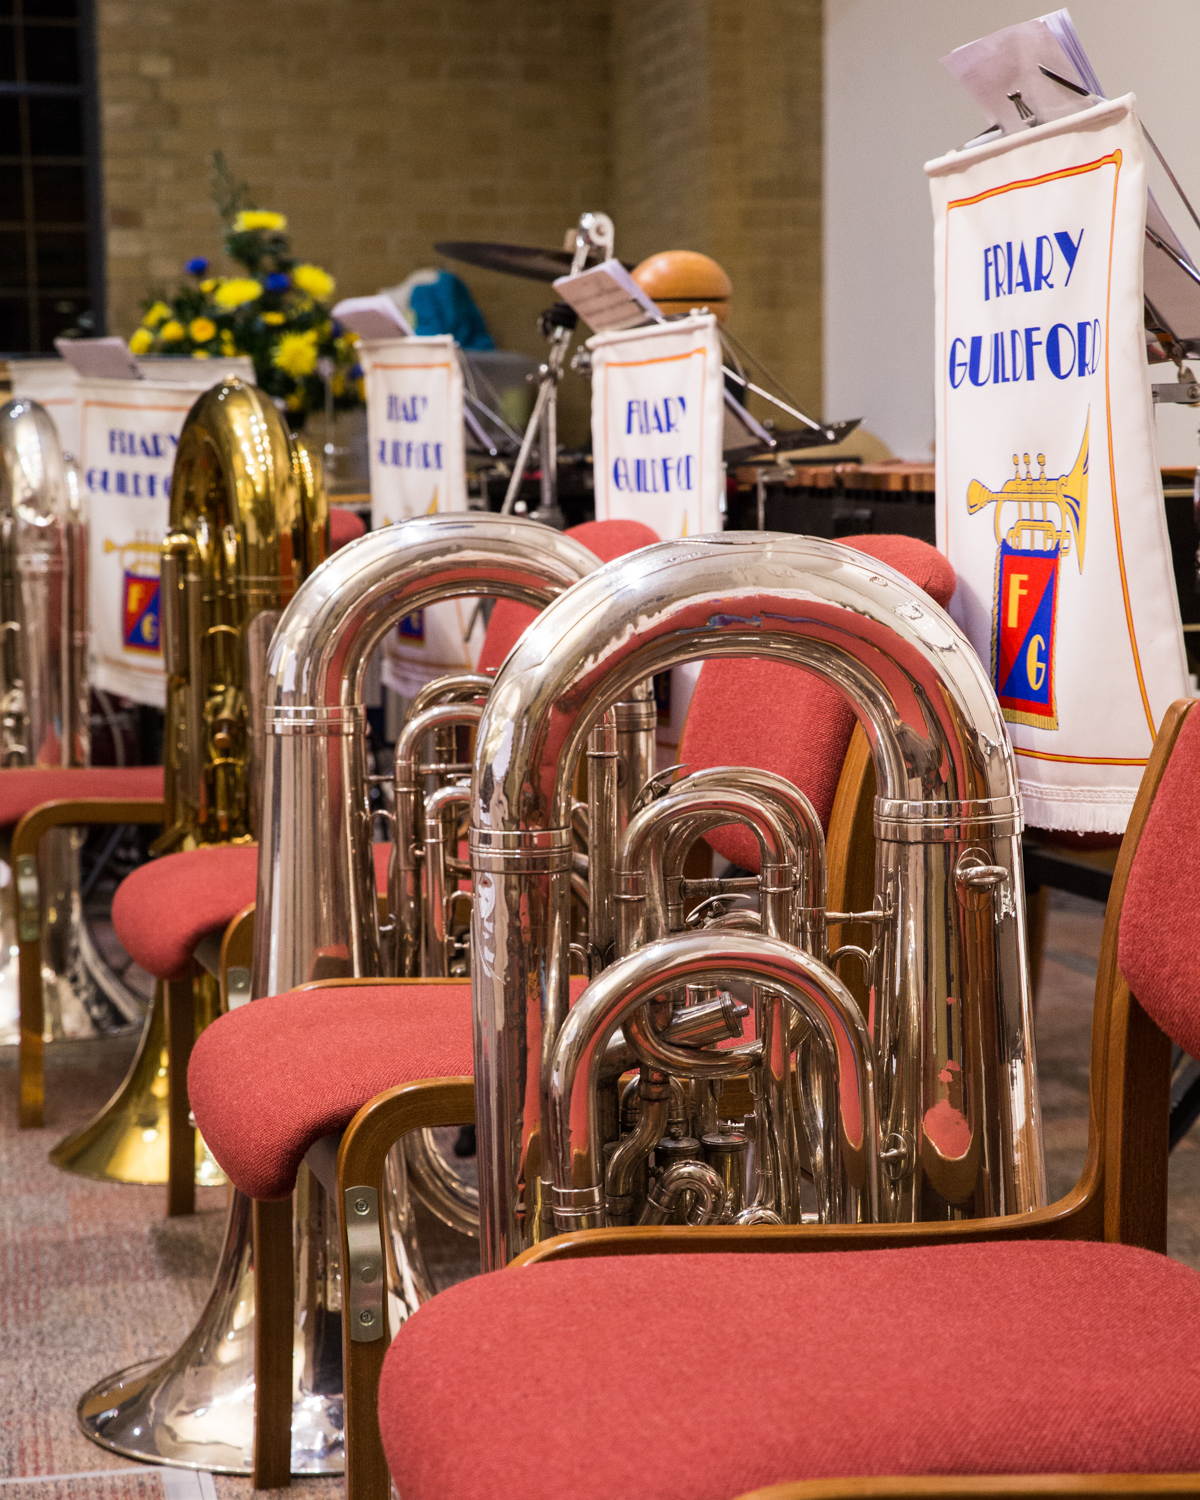 I wonder what the collective noun for tubas is.....